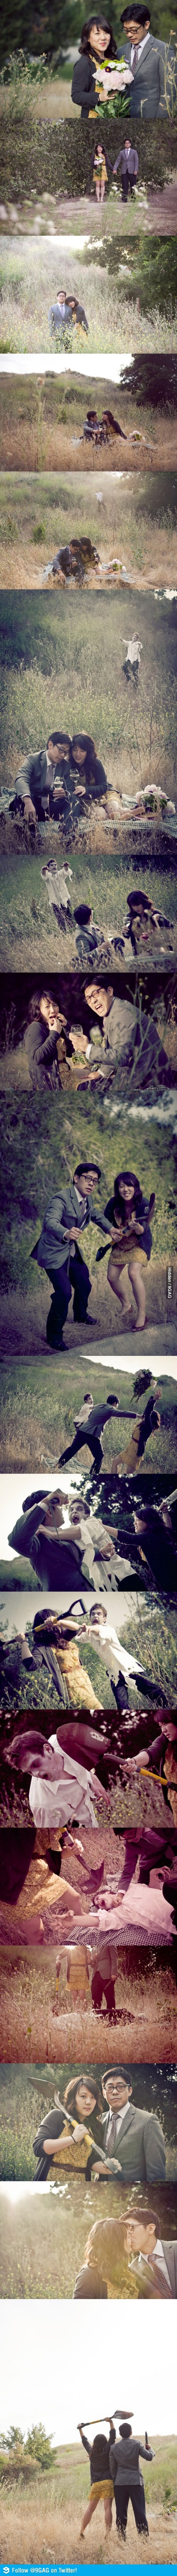 You think your engagement photos are funny?